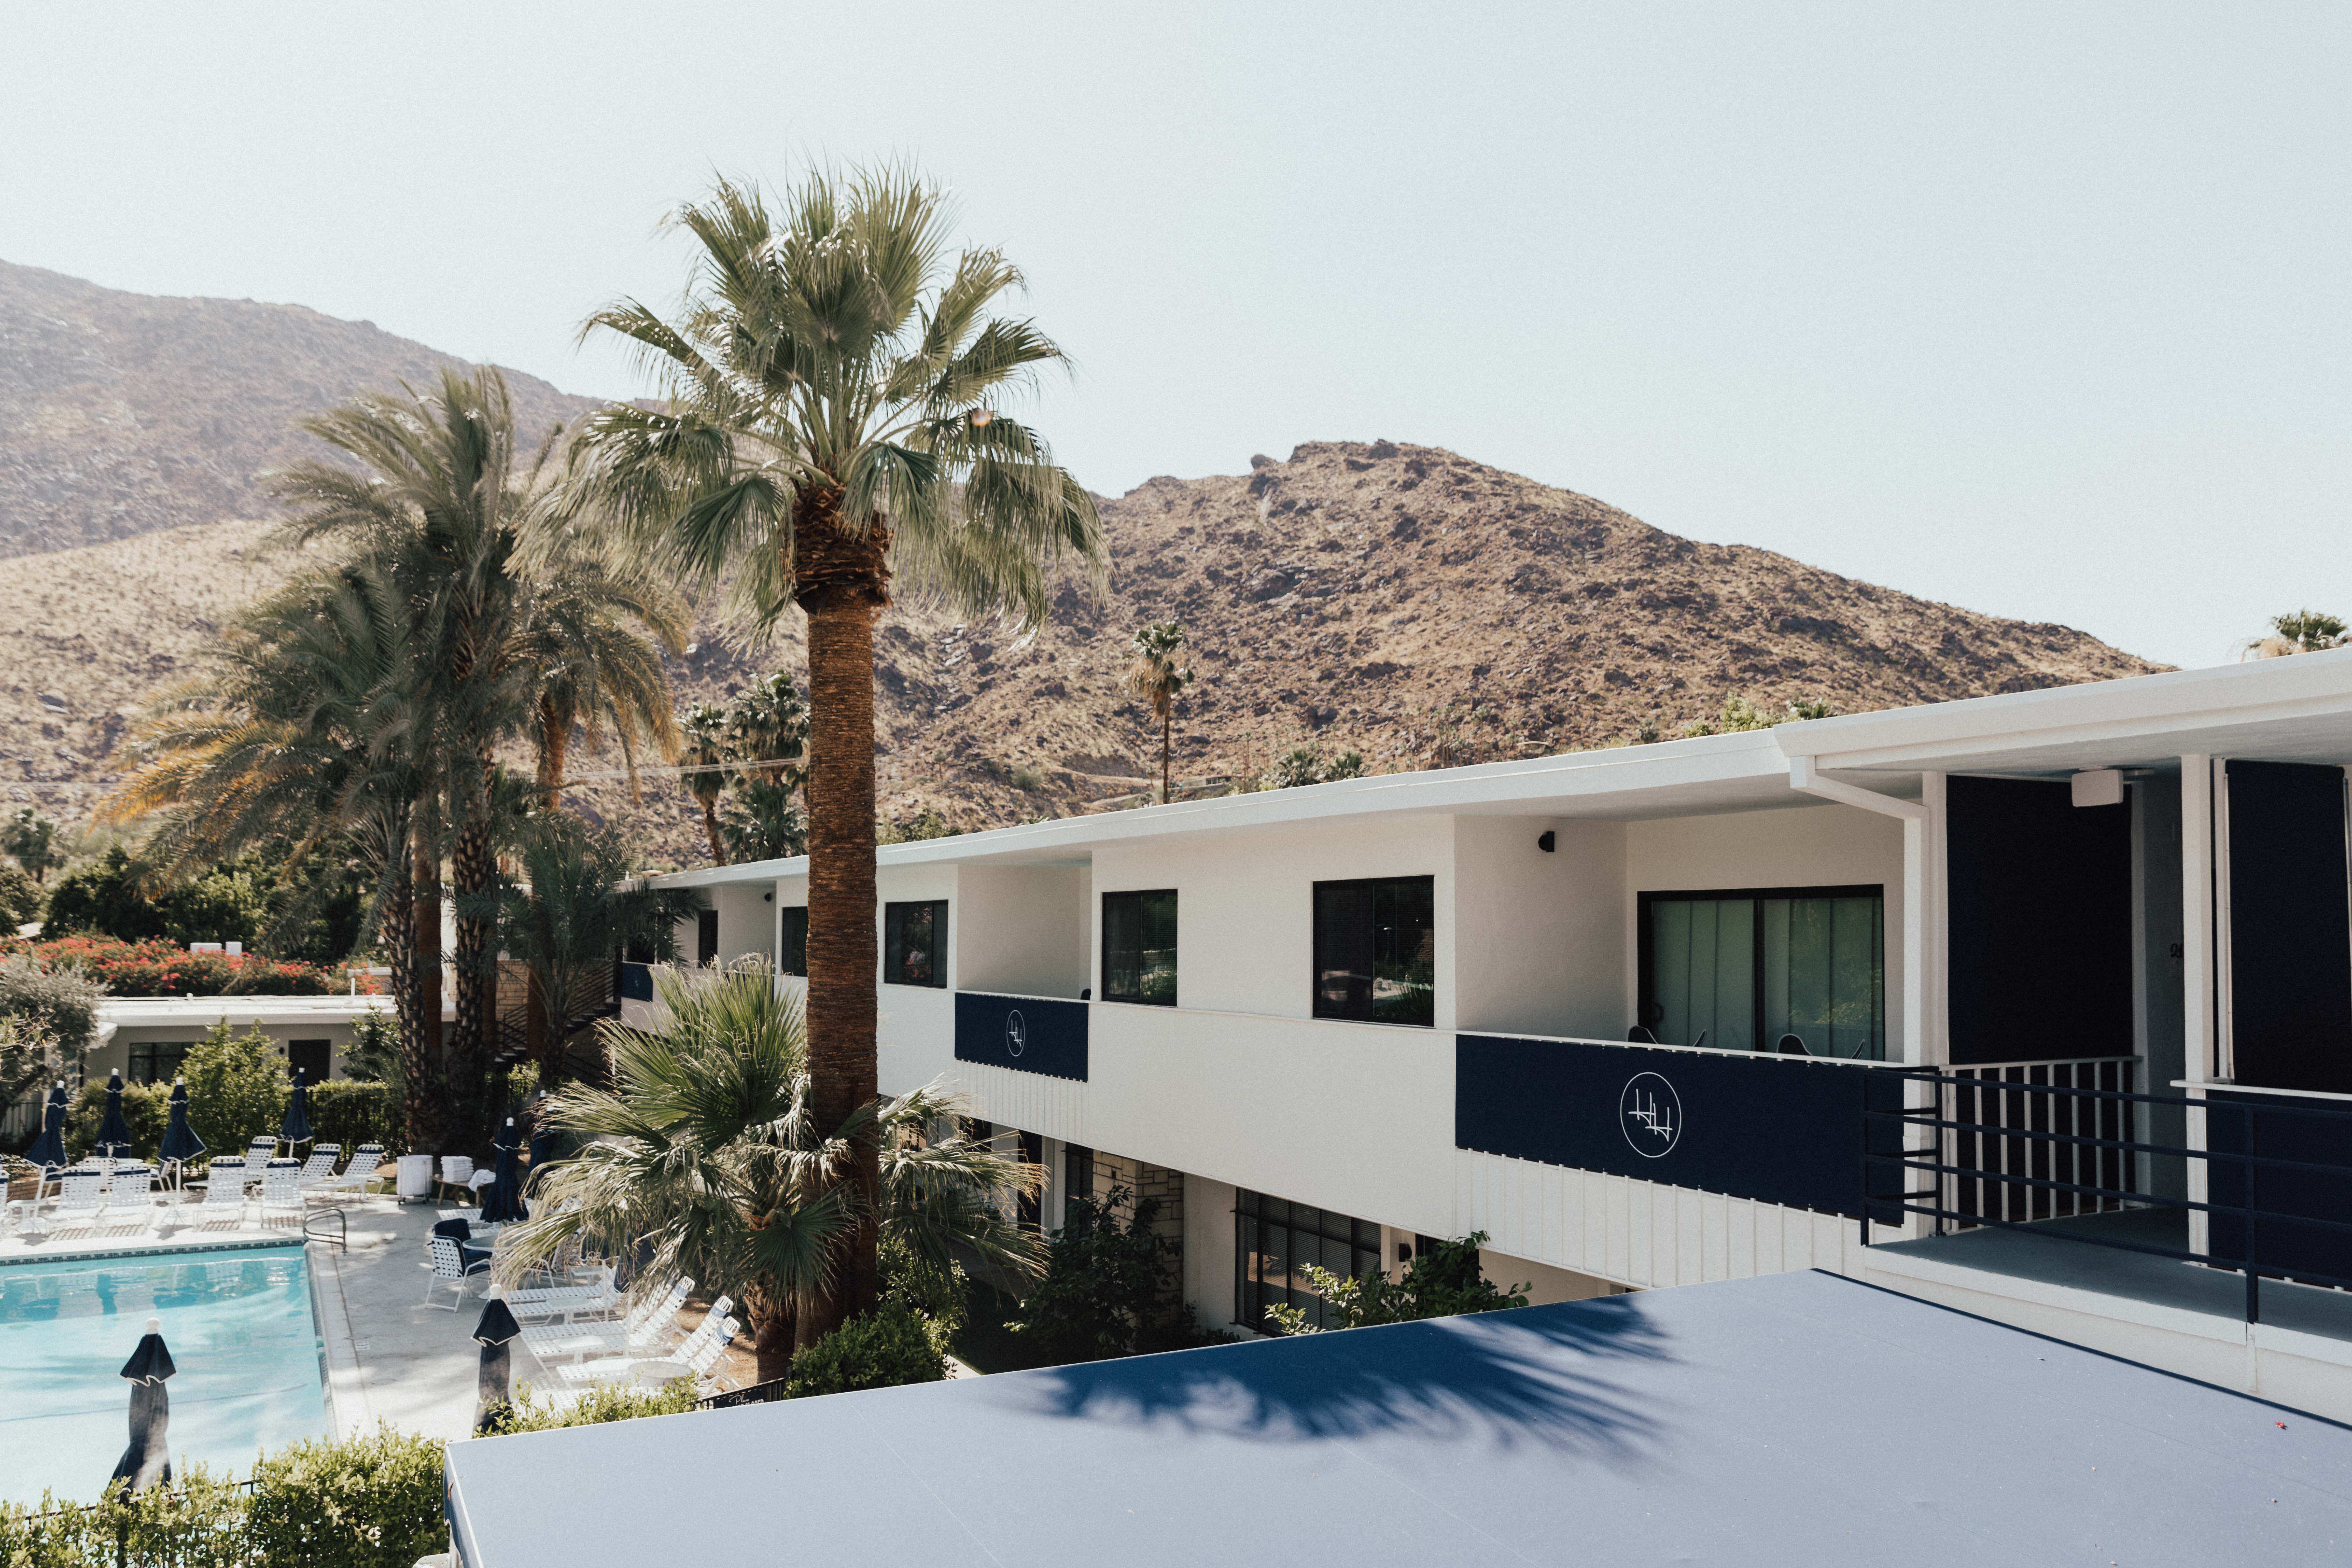 Holiday House Palm Springs - Where to Stay in Palm Springs